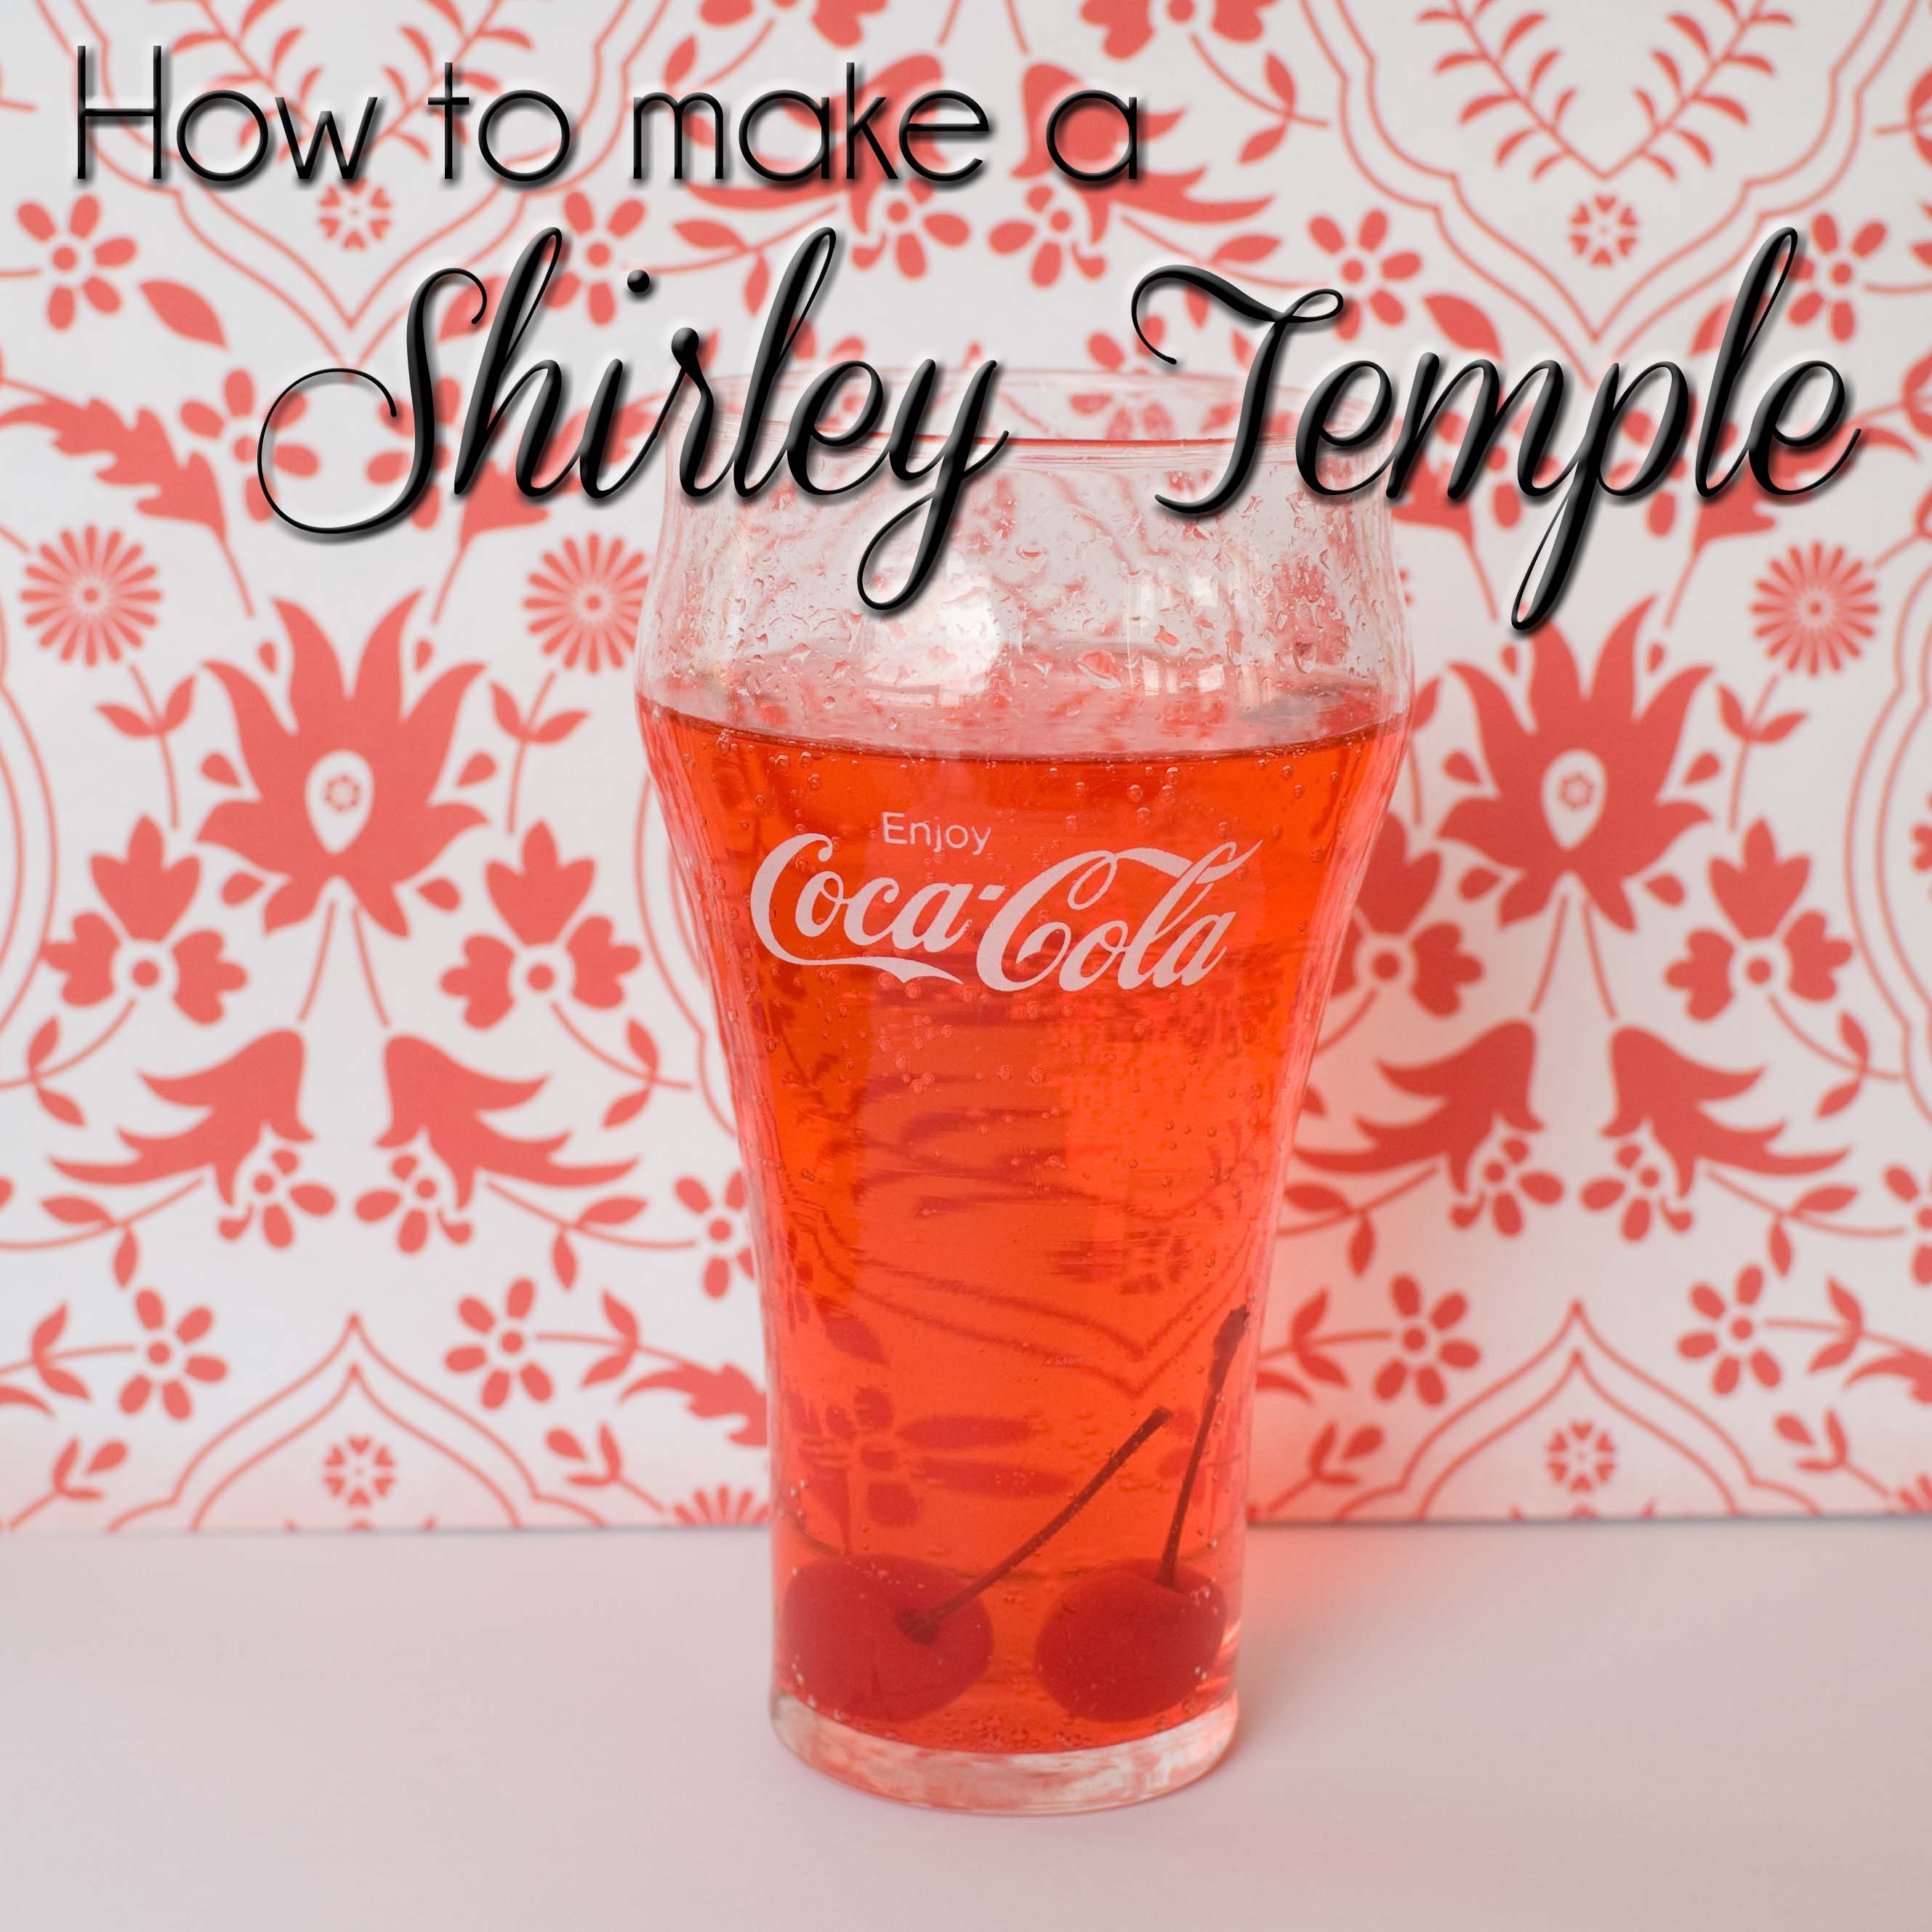 shirley temple drink how to make